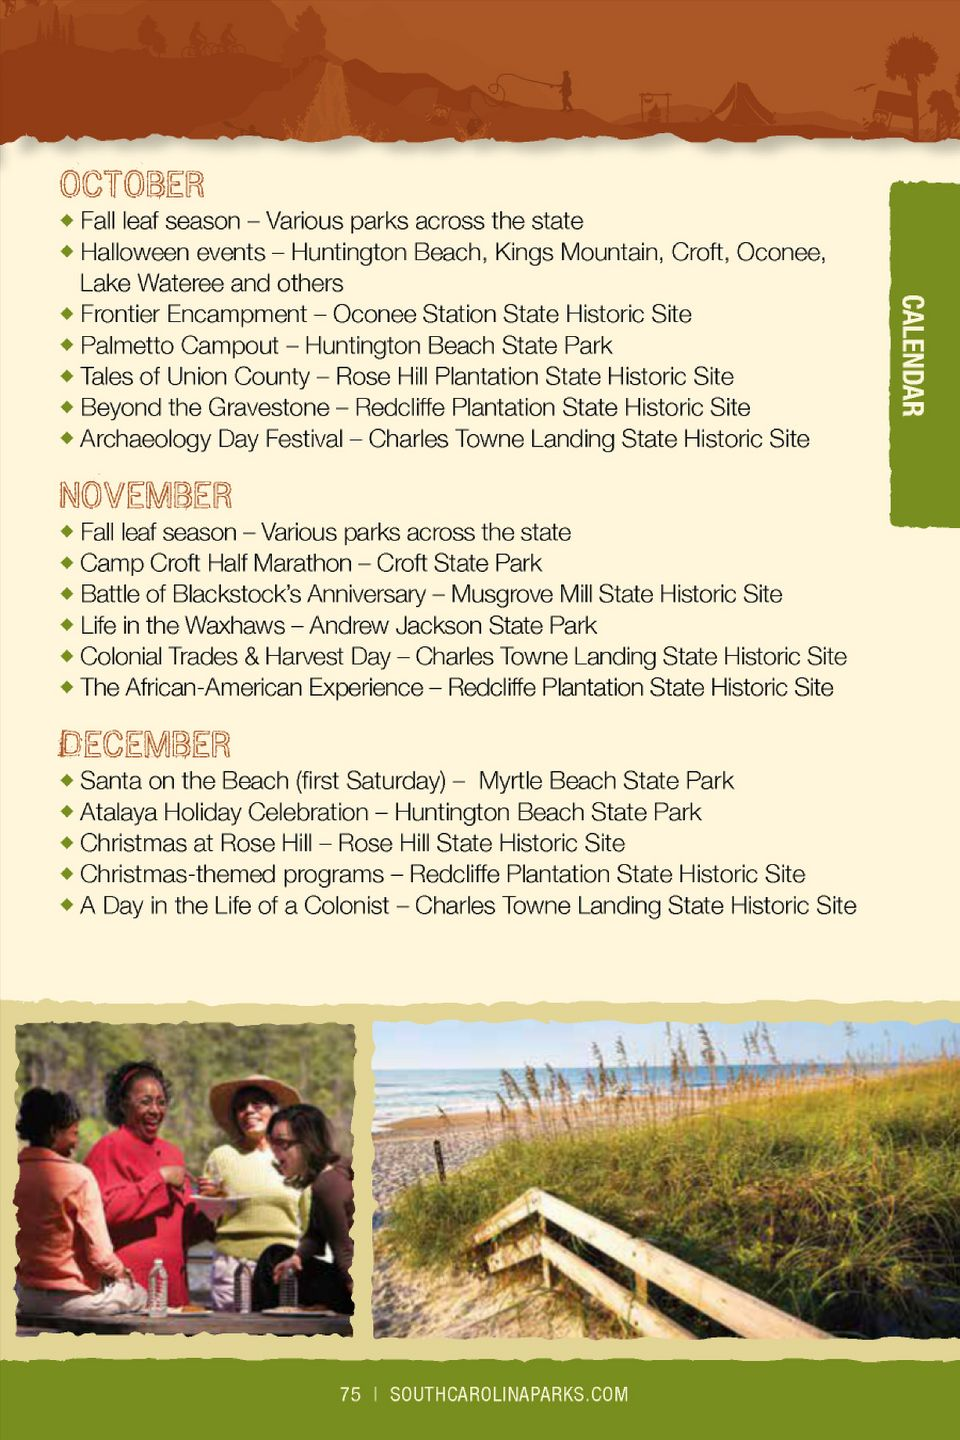 SC Parks Guide20202013 Union county